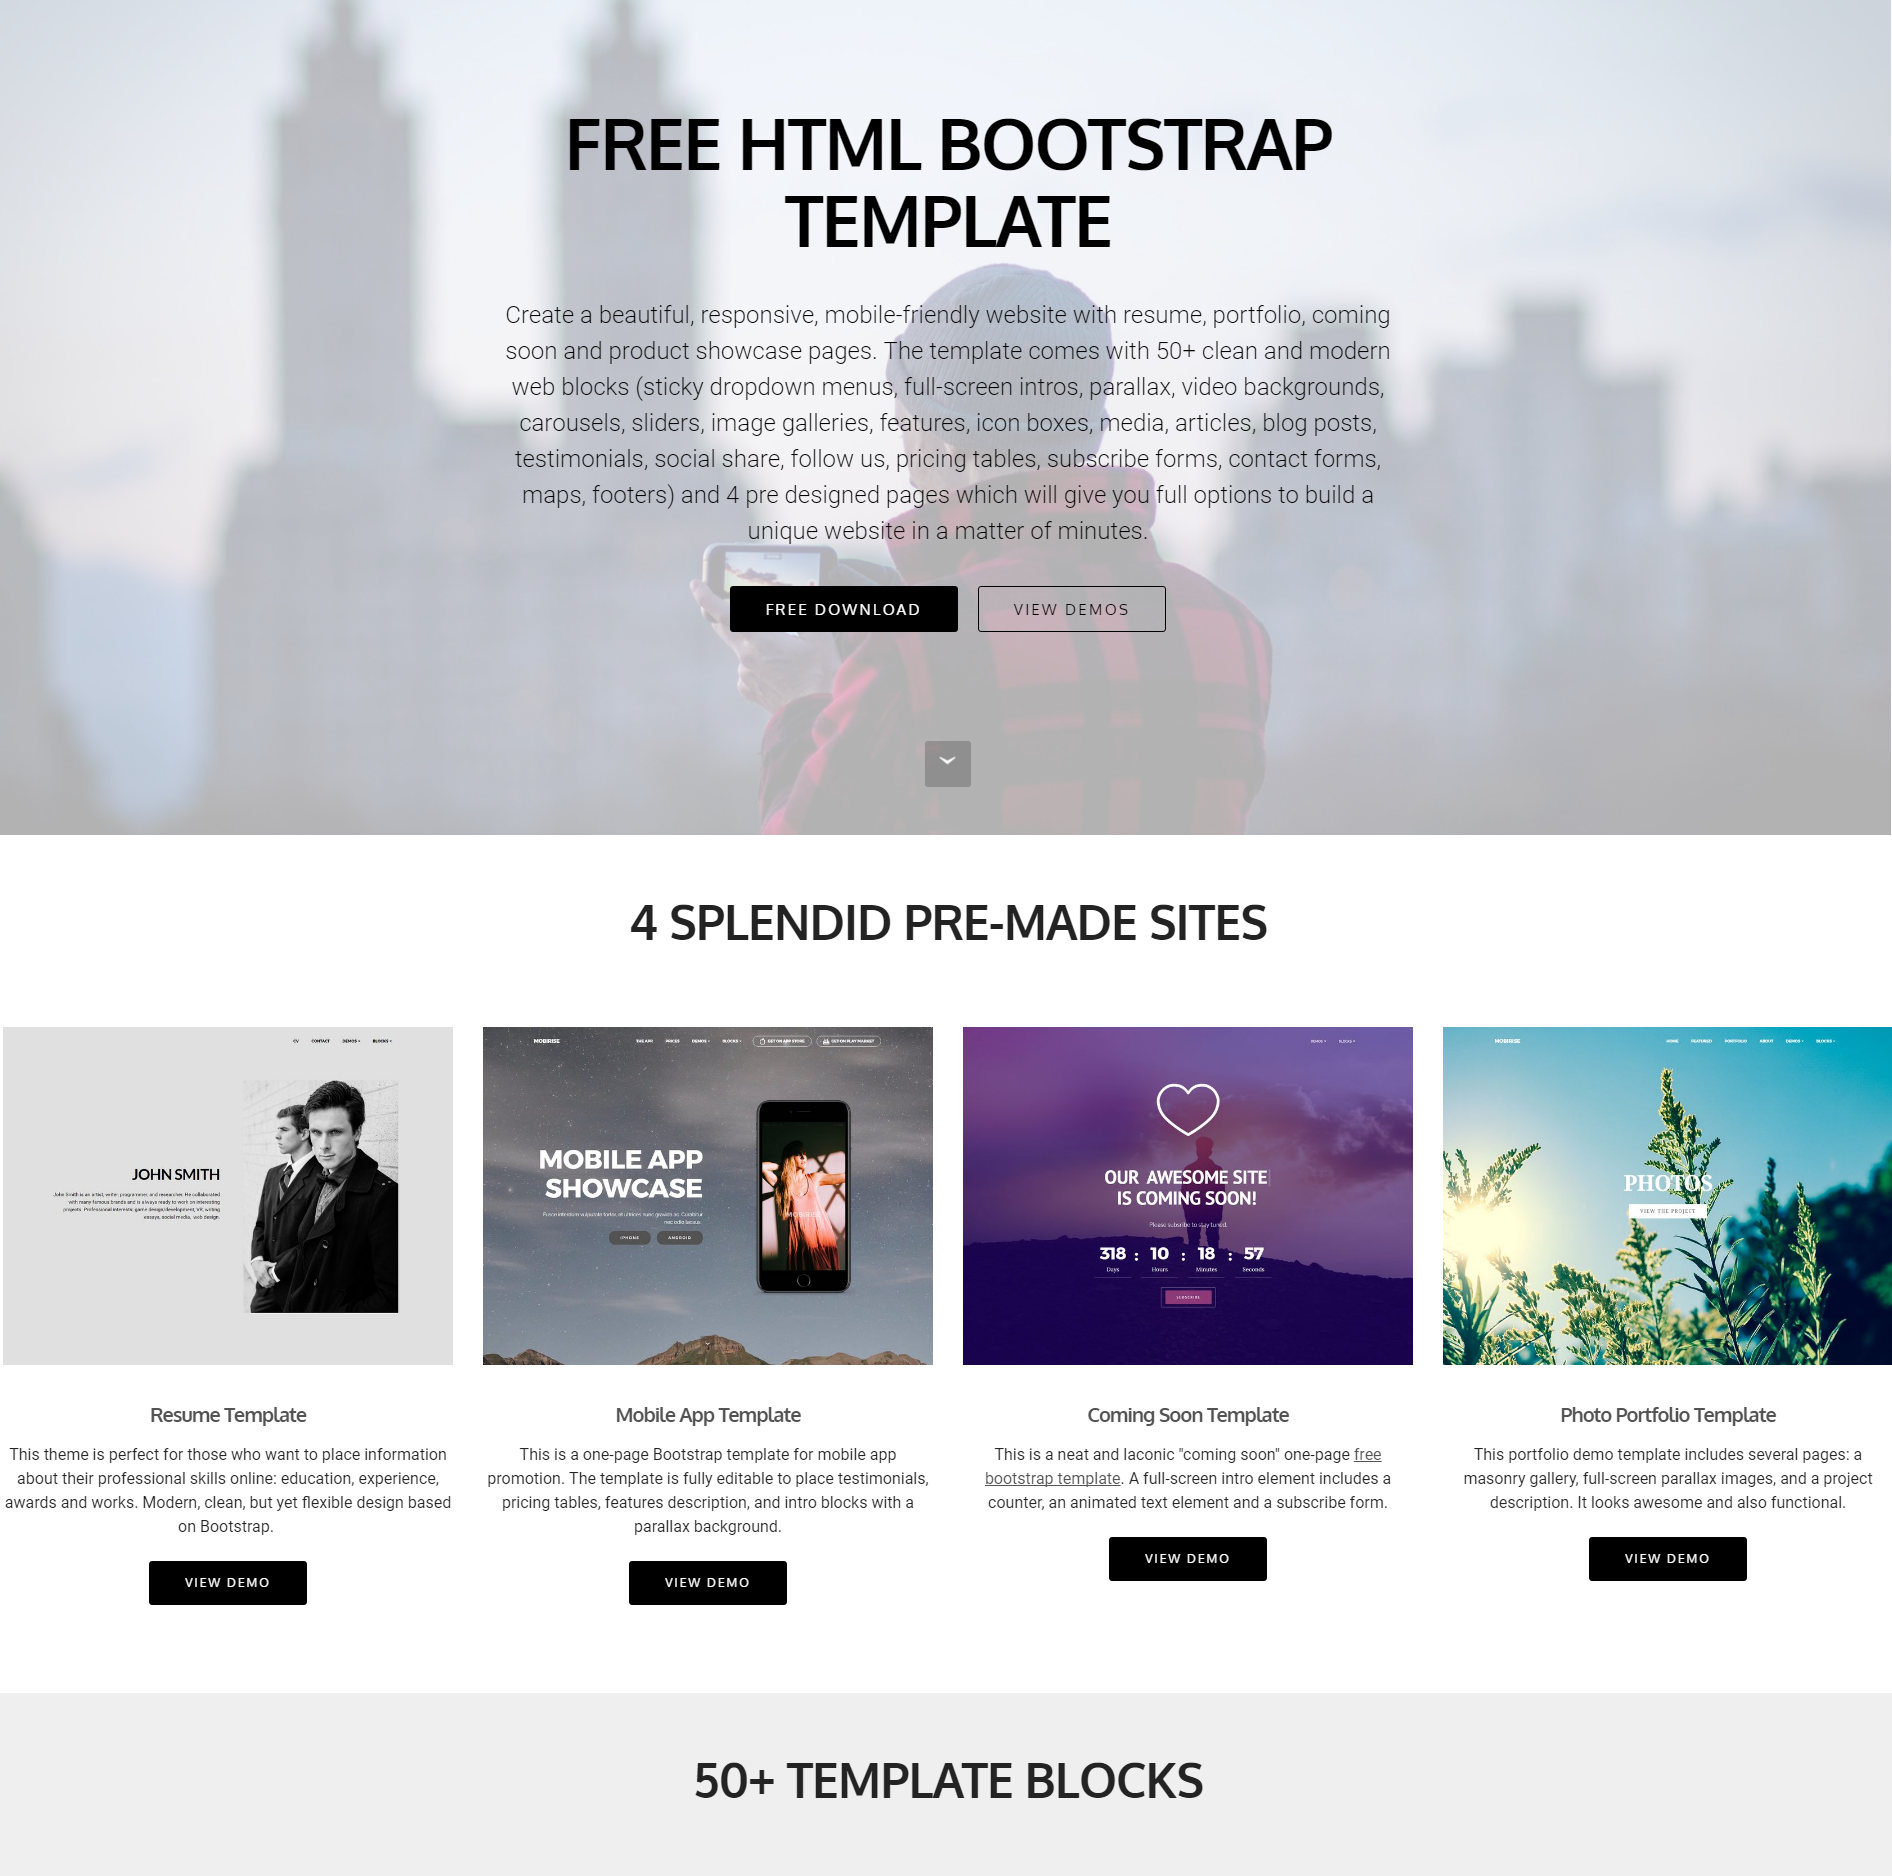 CSS3 Bootstrap Templates